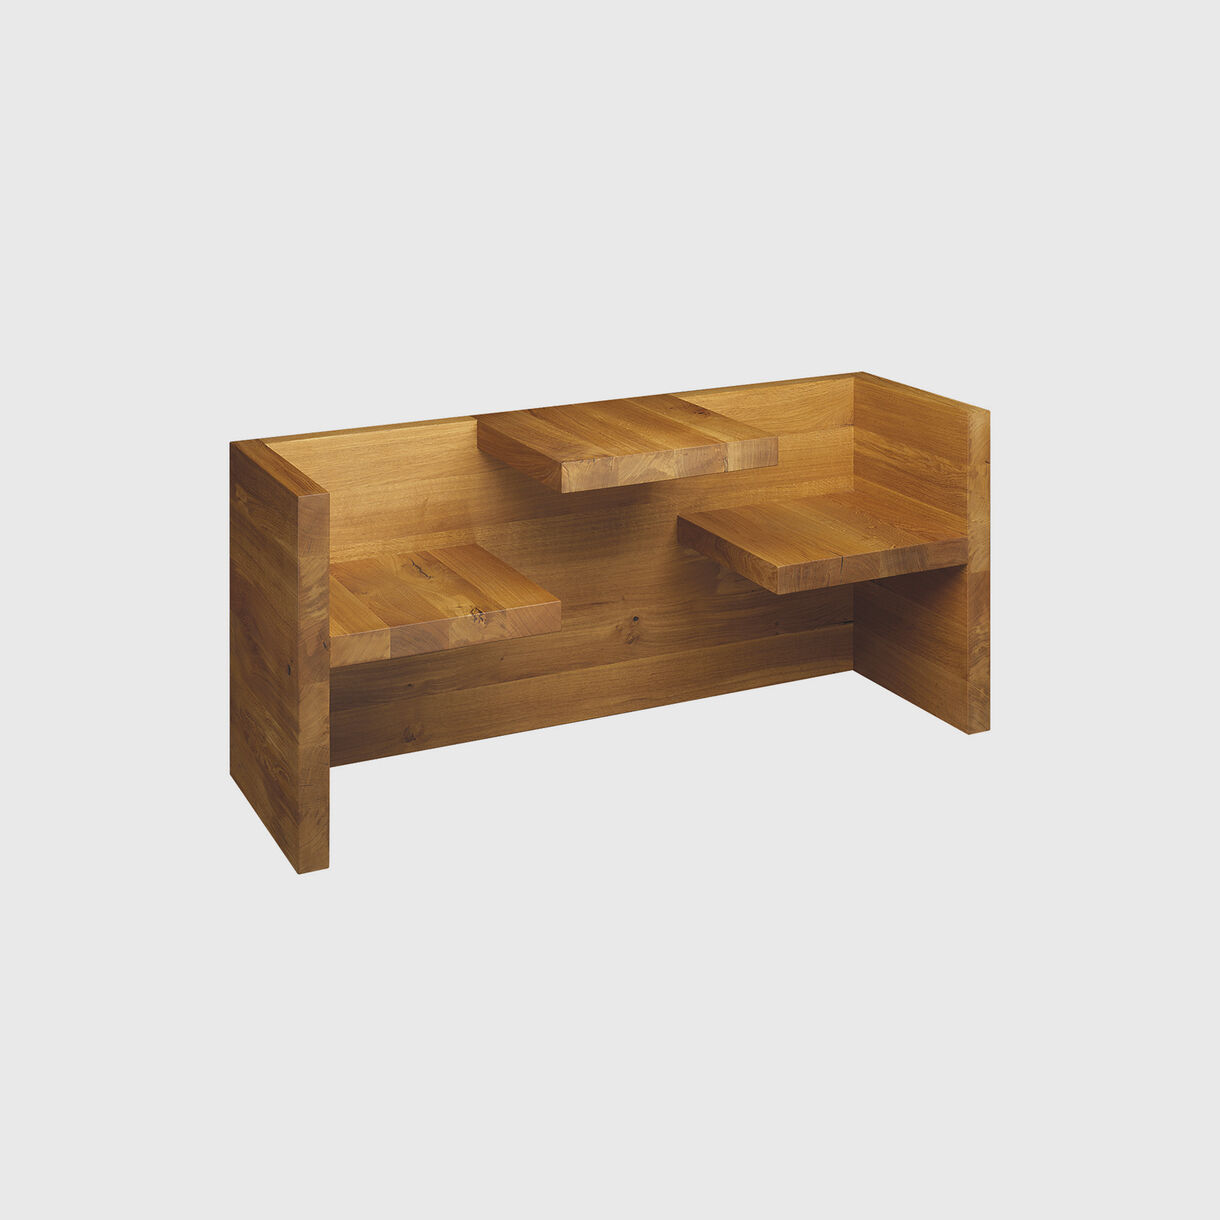 Tafel Table Bench, European Oak